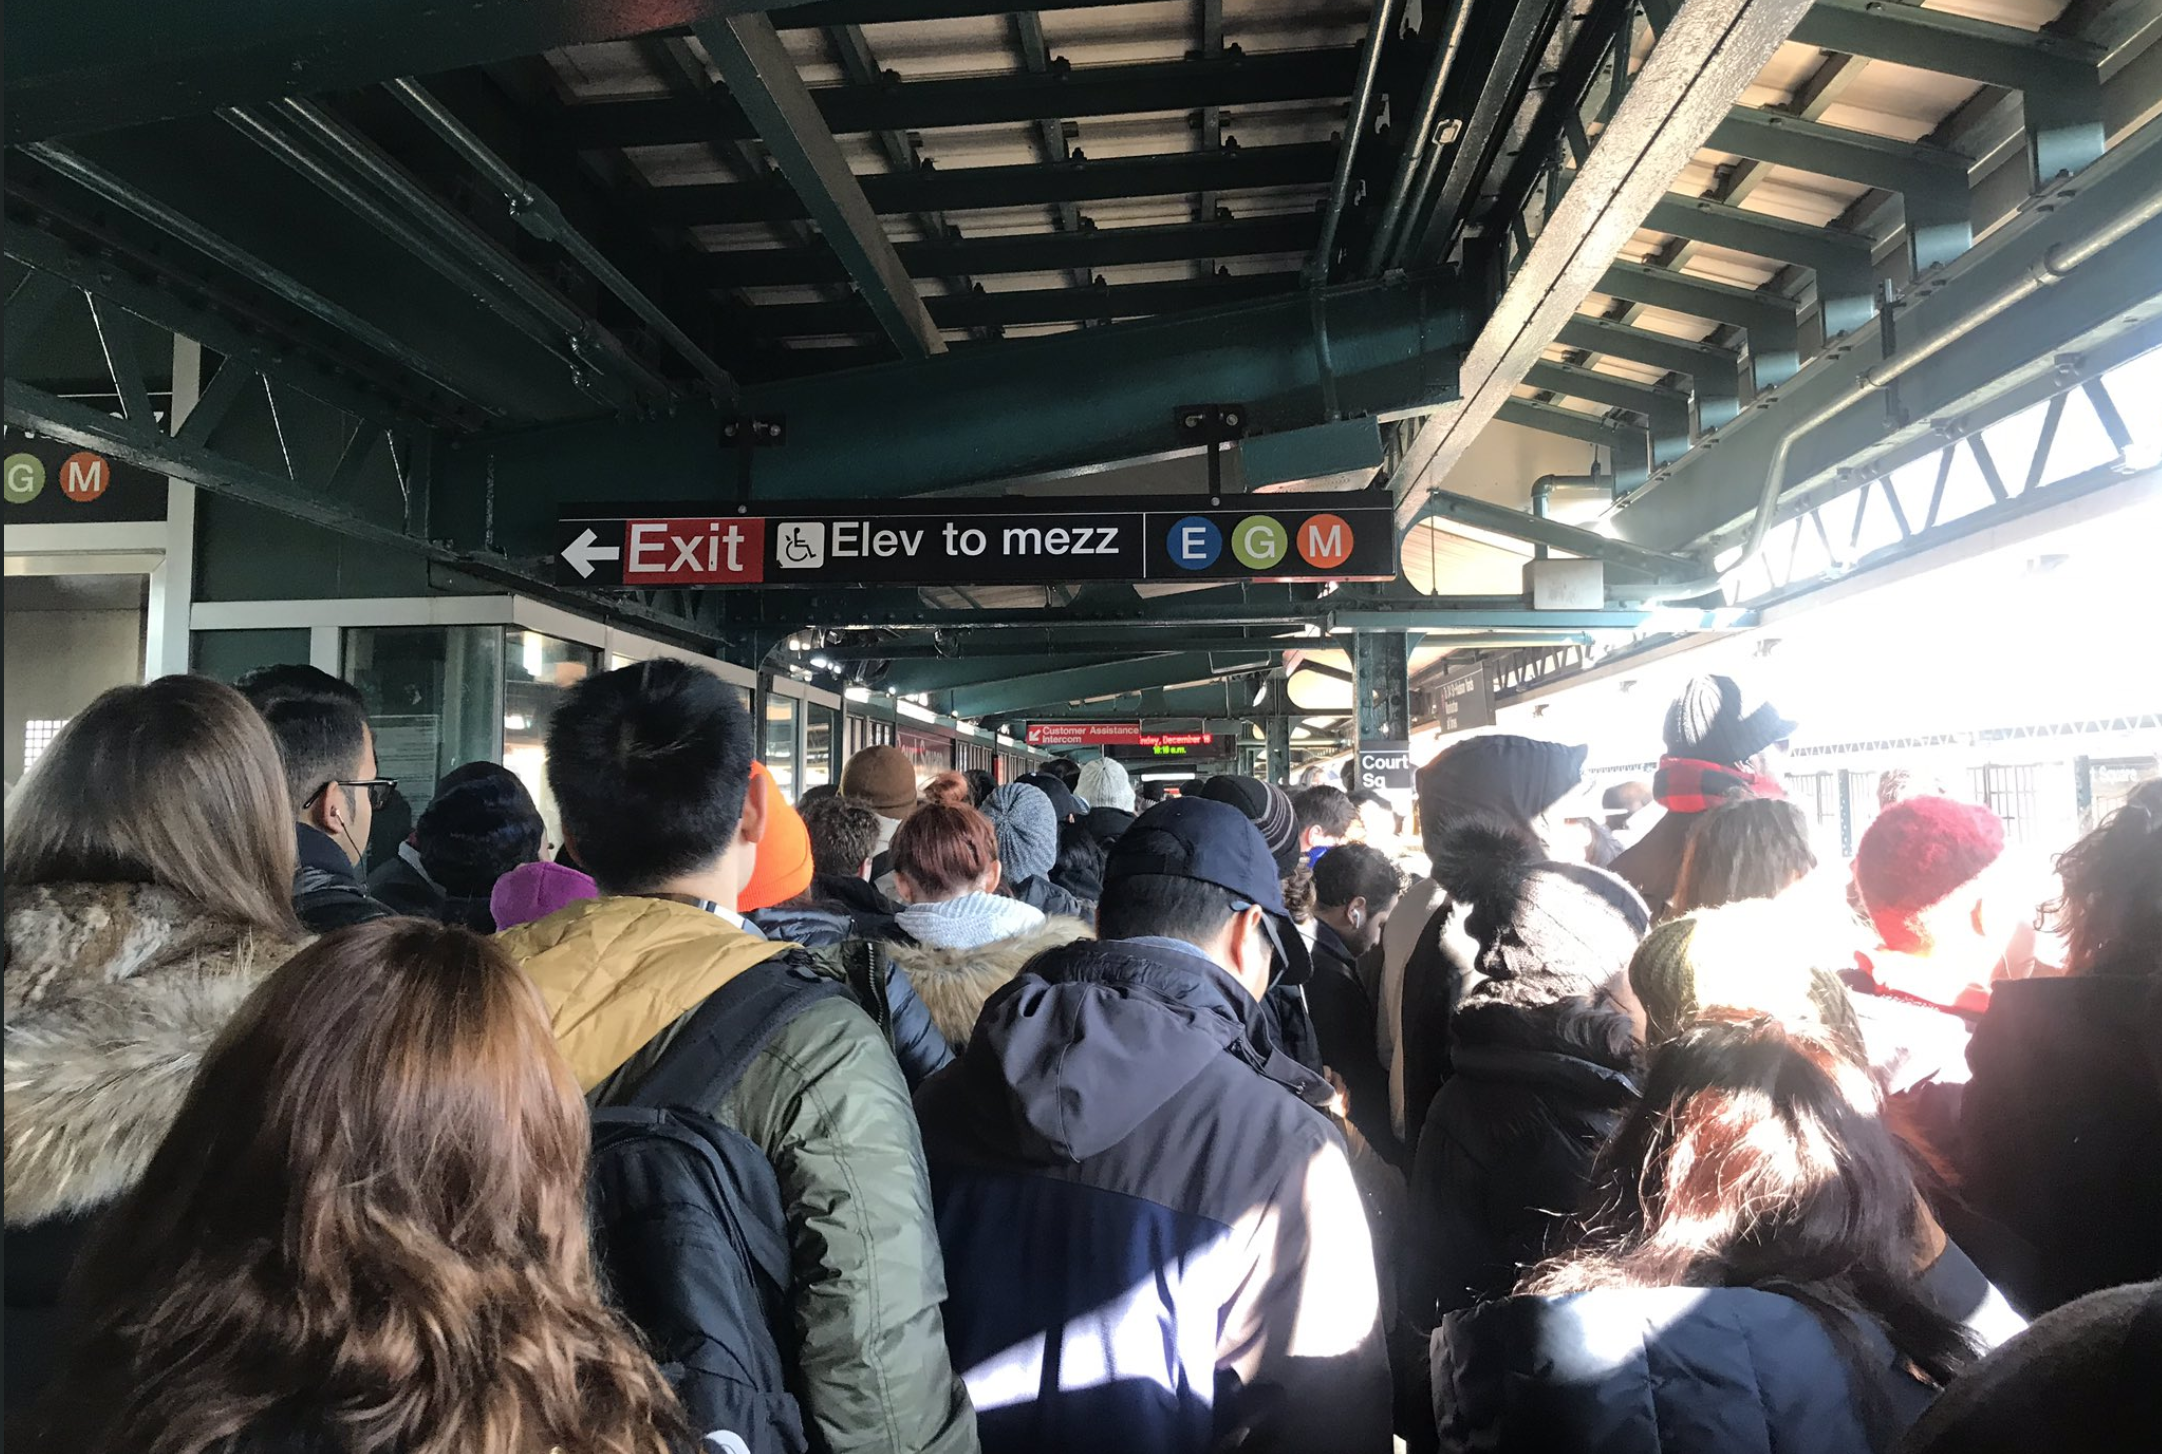 The Court Square subway station was crammed with commuters last week. Photo courtesy of Jeremy Rosenberg.